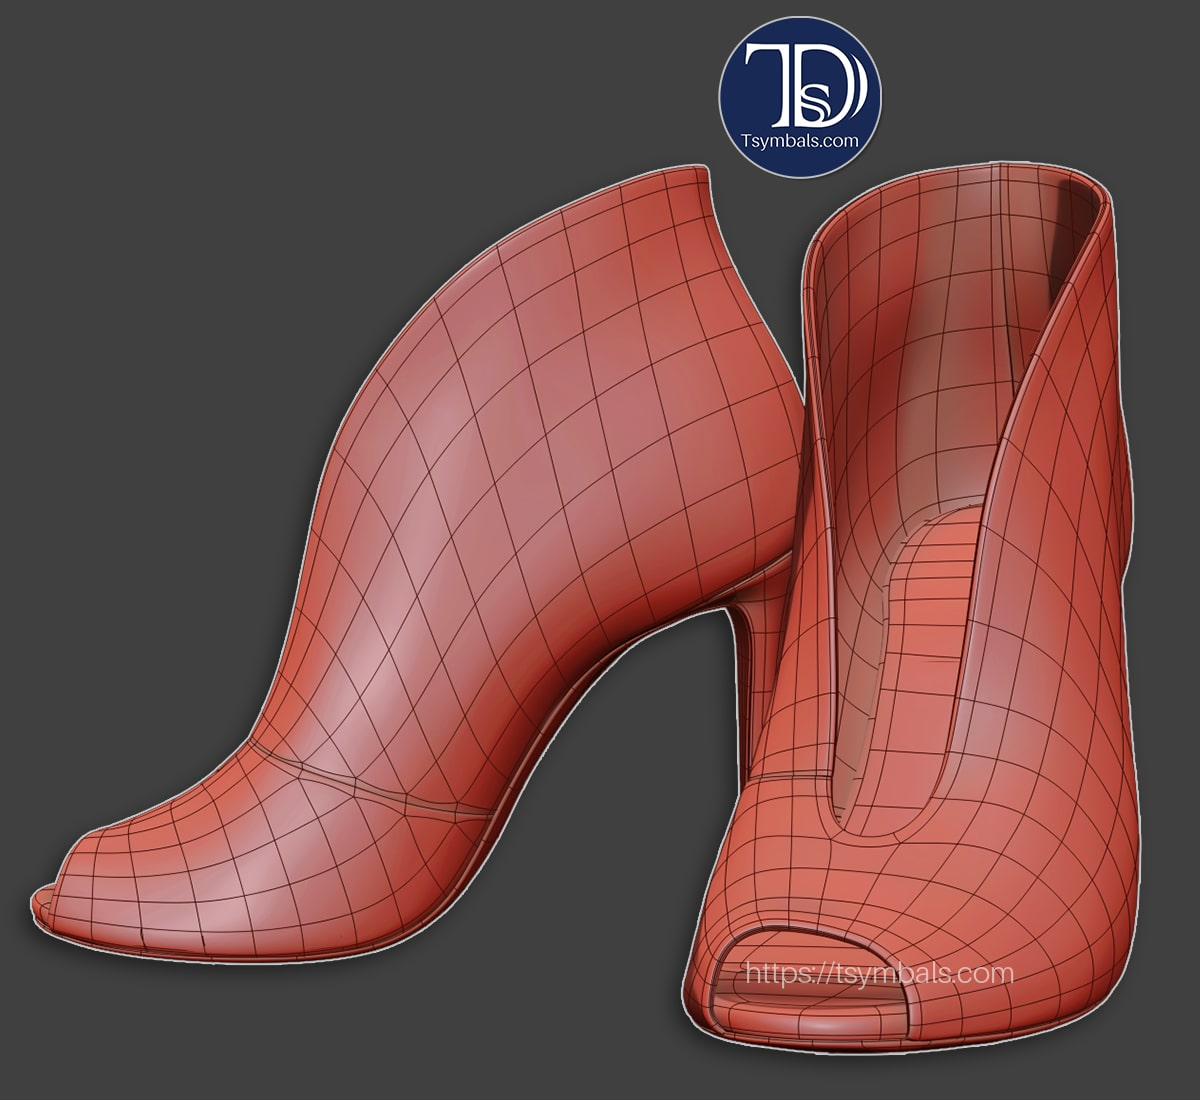 High heel shoes 3D modeling 👠 | Tsymbals Design